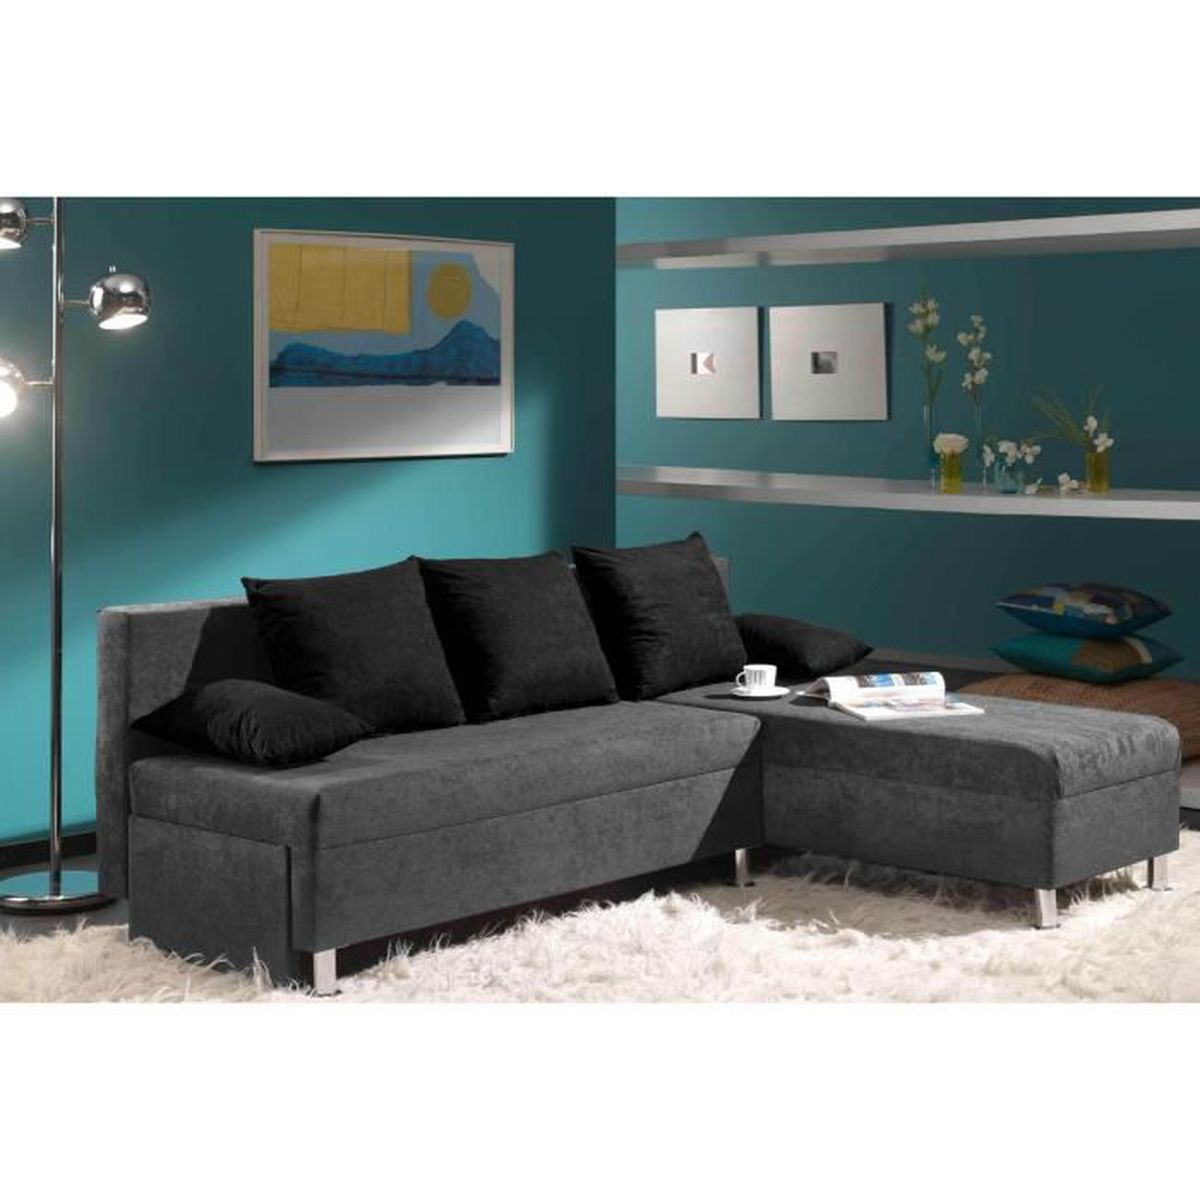 canap d 39 angle convertible modulable gris soya achat vente canap sofa divan cdiscount. Black Bedroom Furniture Sets. Home Design Ideas